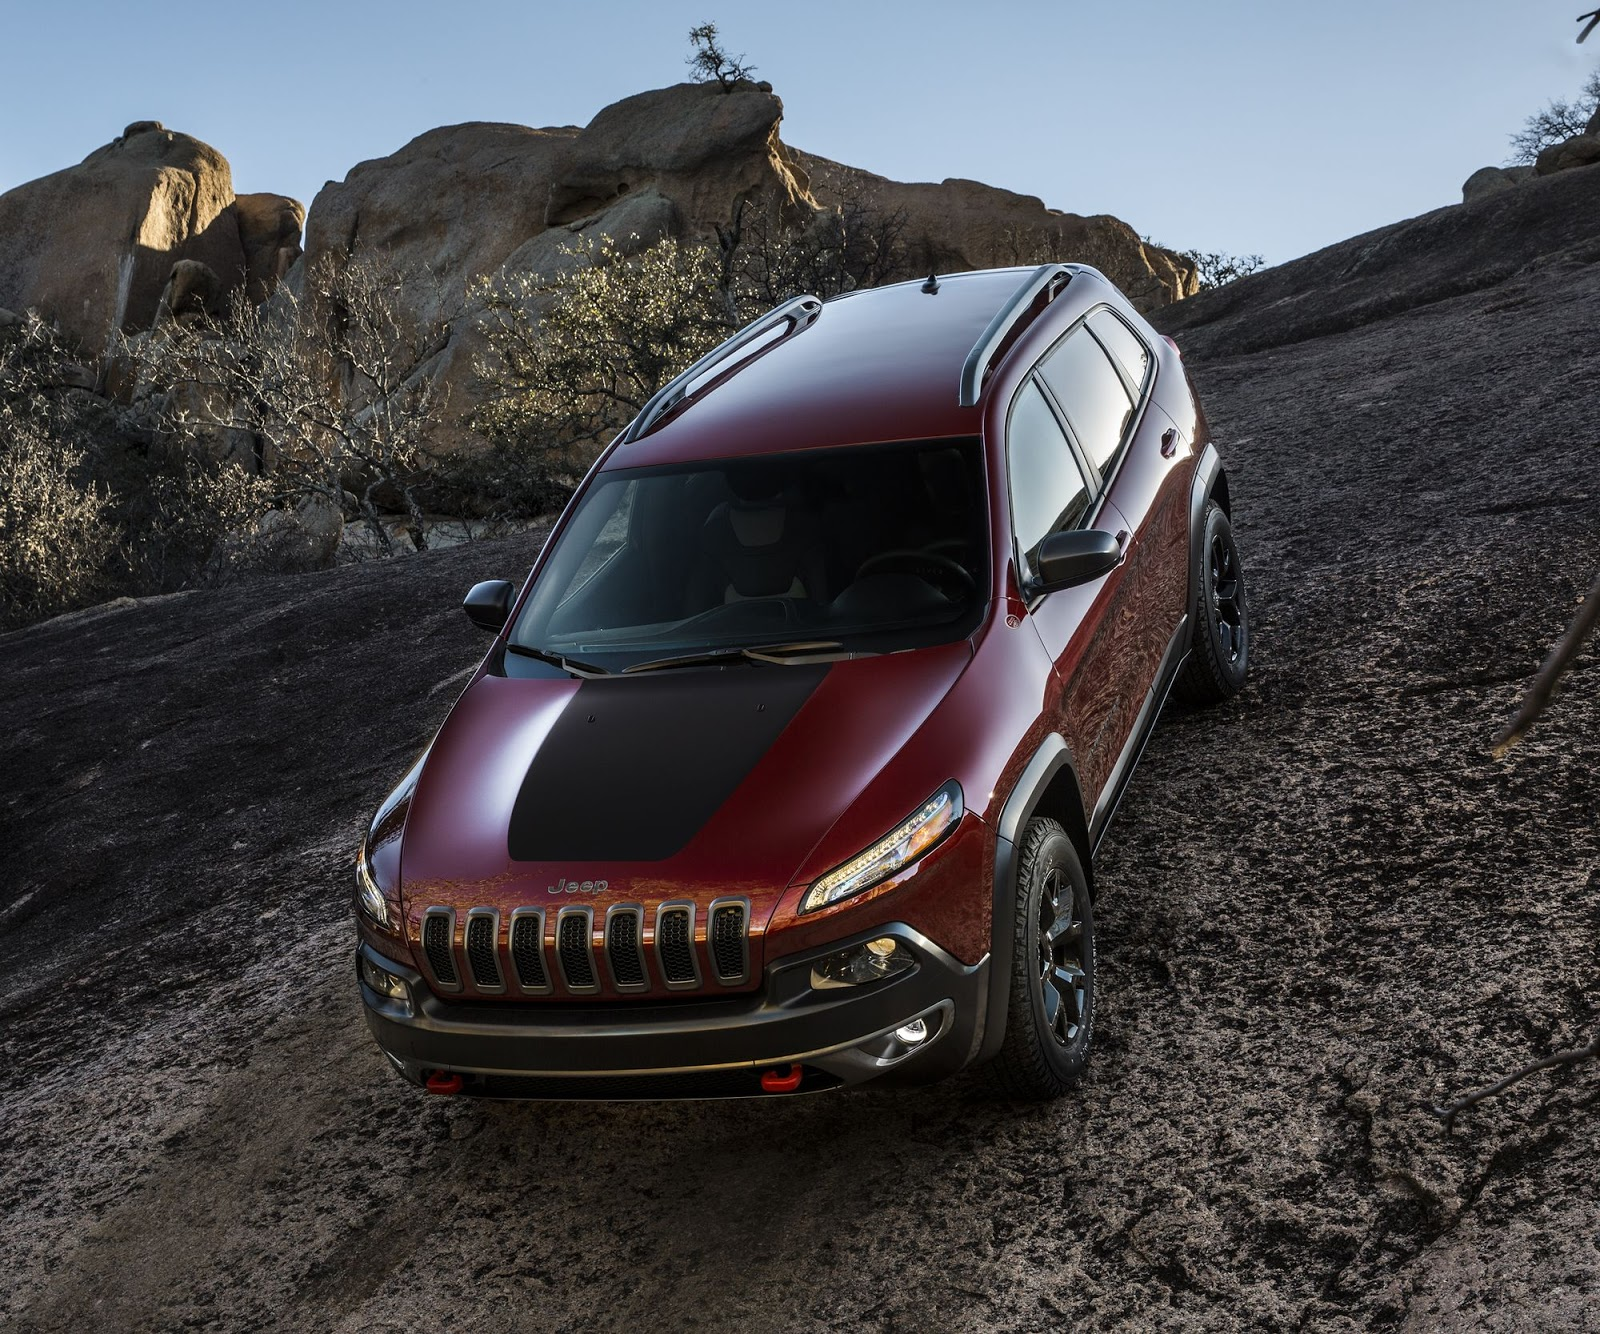 Jeep Cherokee Updated For 2018 With New Safety Tech And More